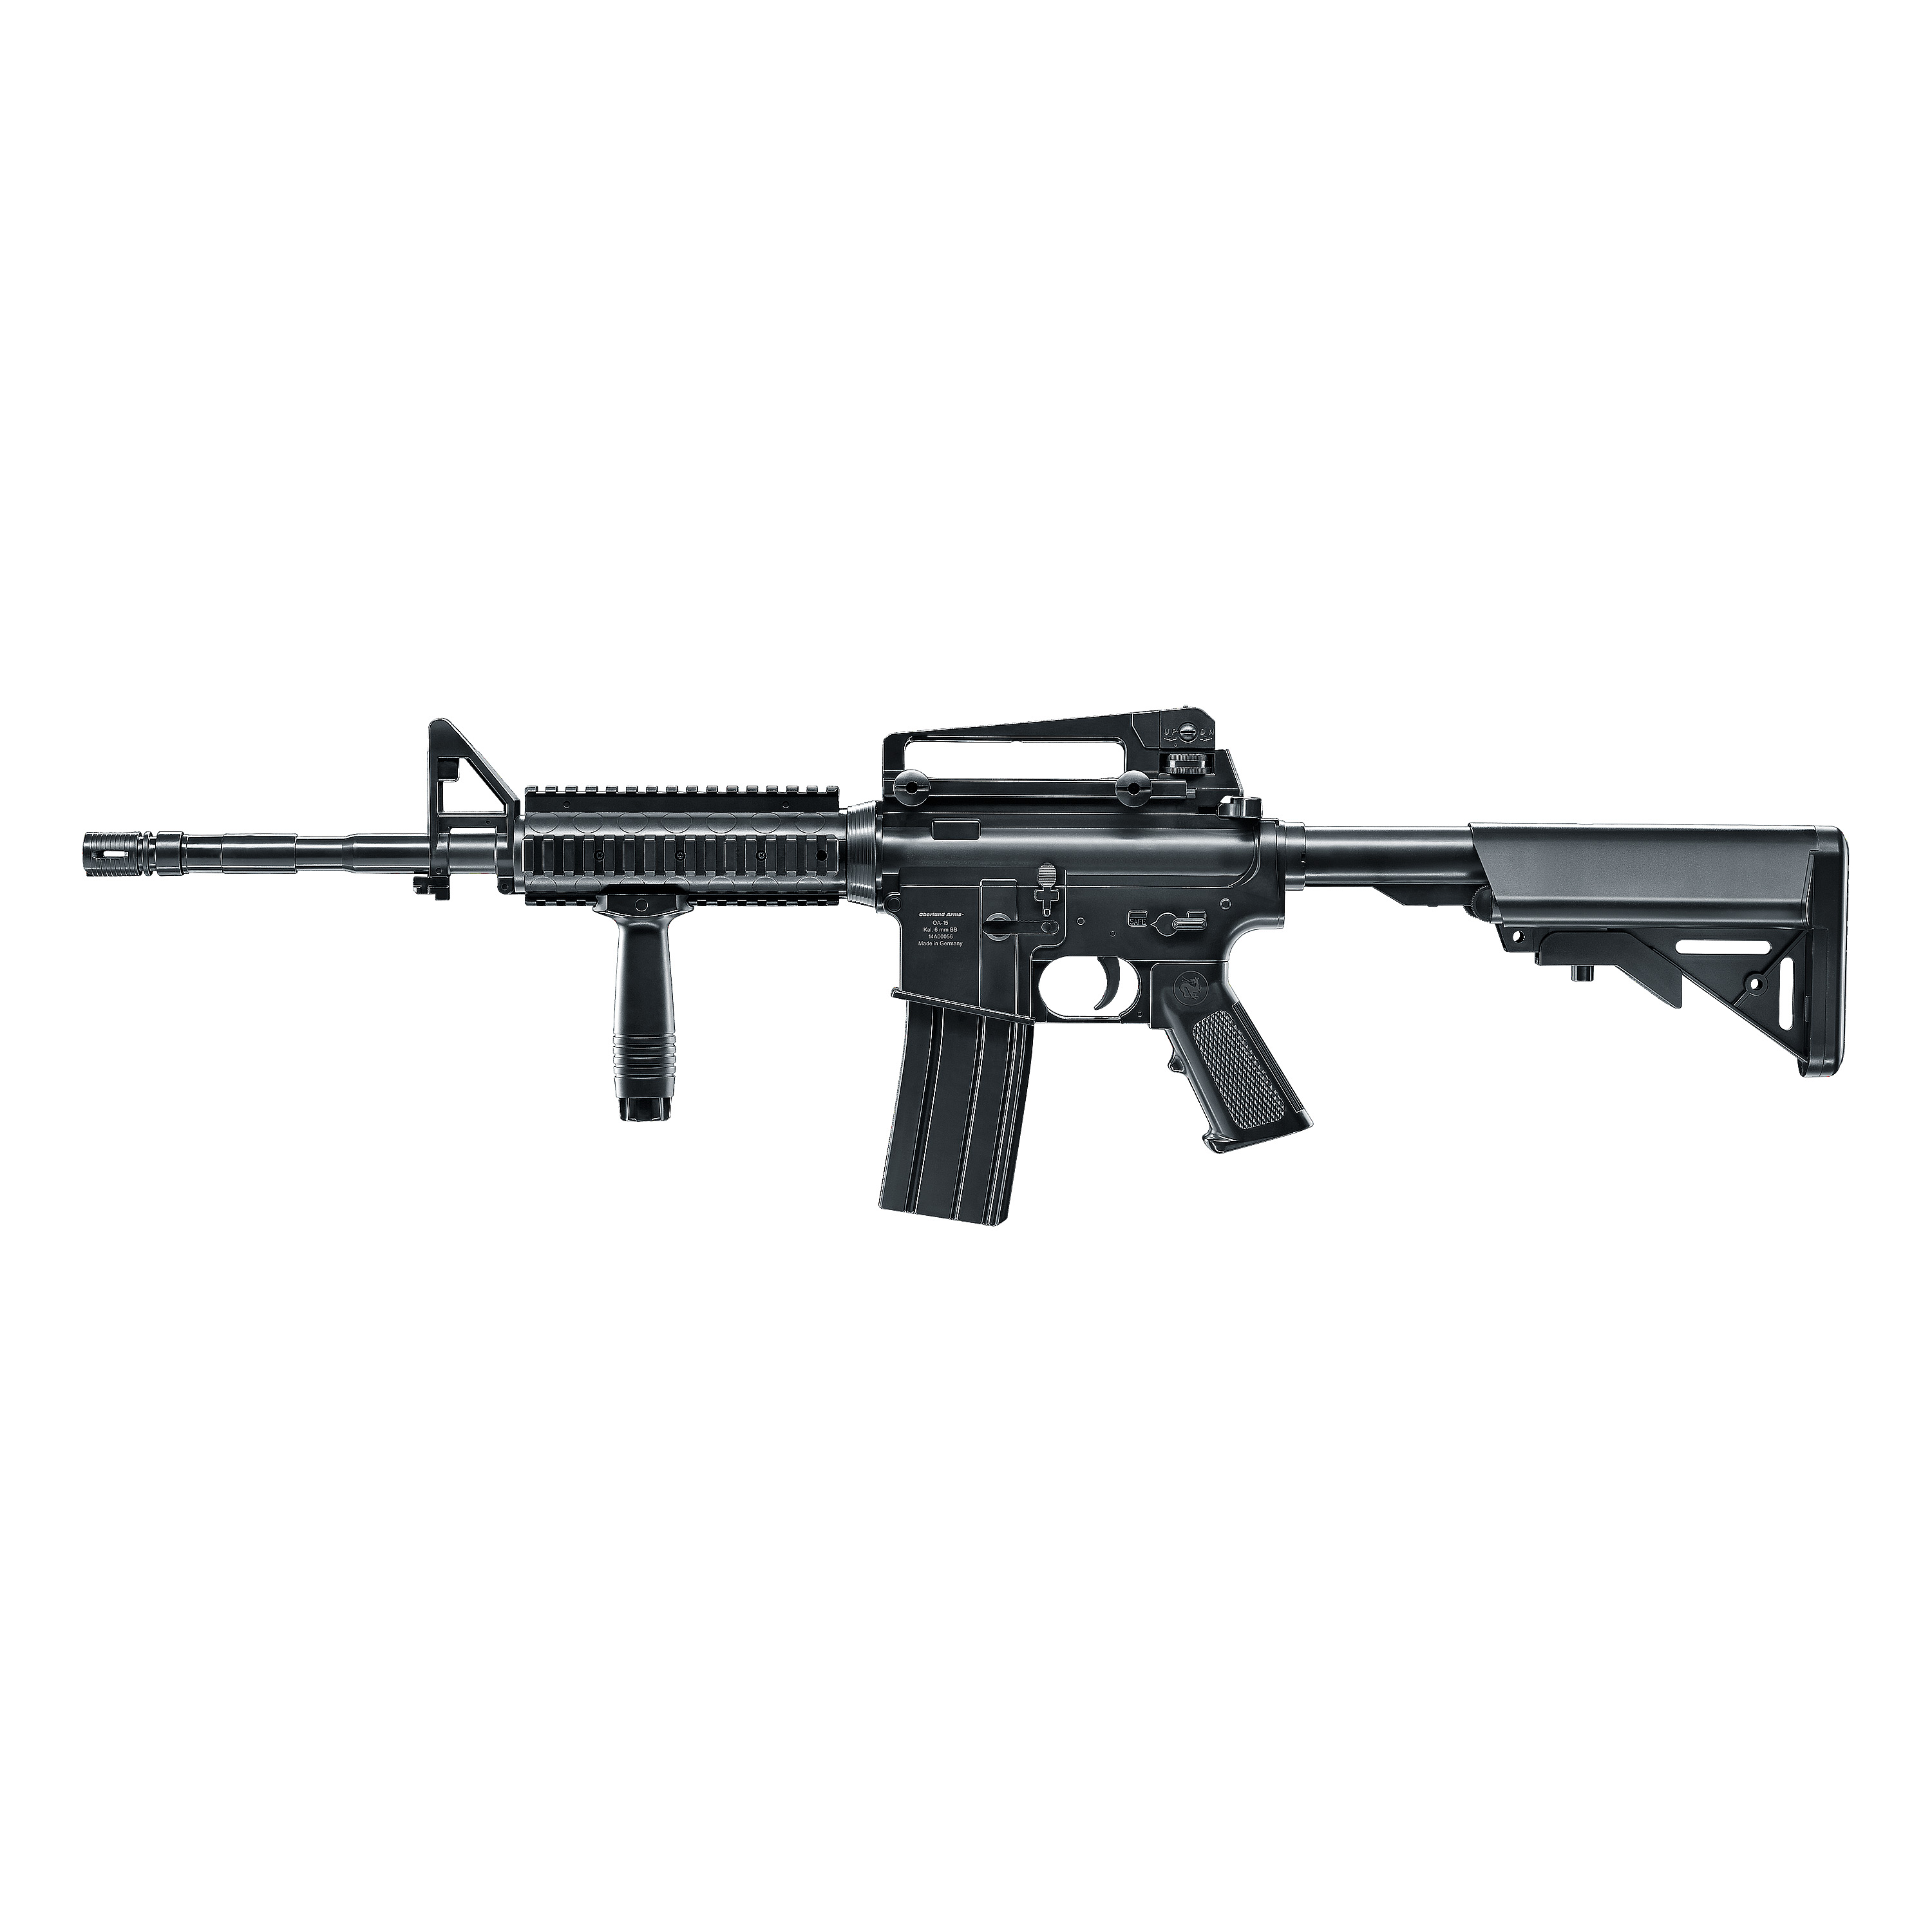 Airsoft Assault Rifle Oberland Arms OA-15 Black Label M4 RIS